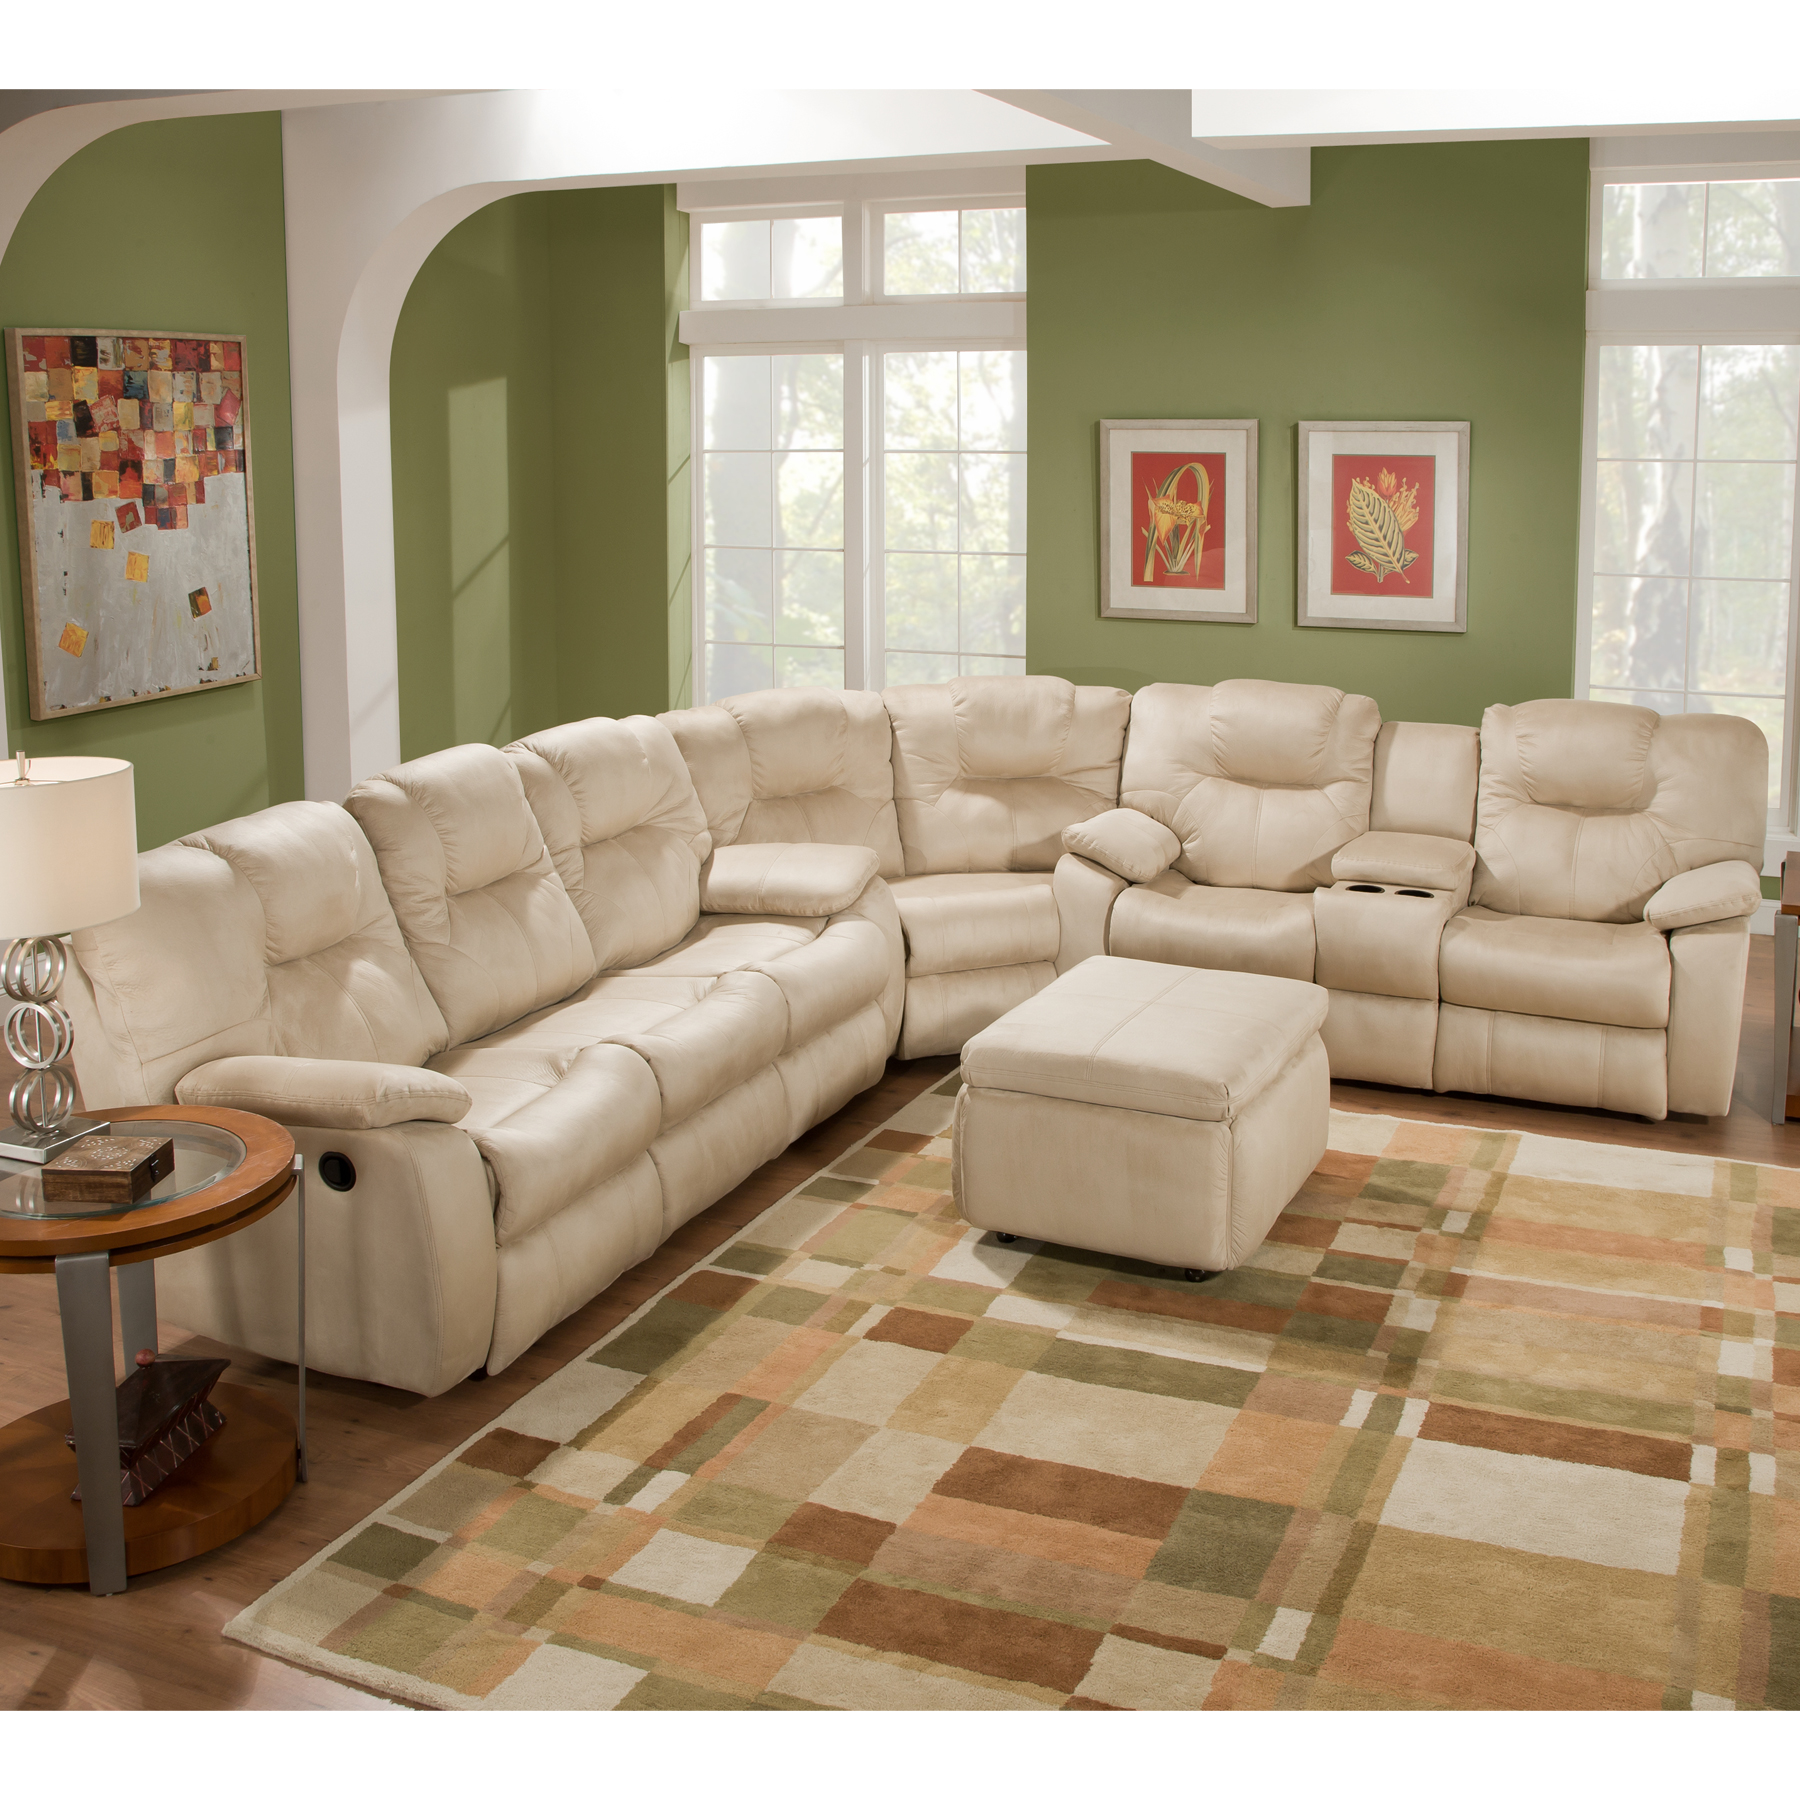 Peachy Avalon 838 Reclining Sectional 140 Fabrics And Sofas And Gmtry Best Dining Table And Chair Ideas Images Gmtryco